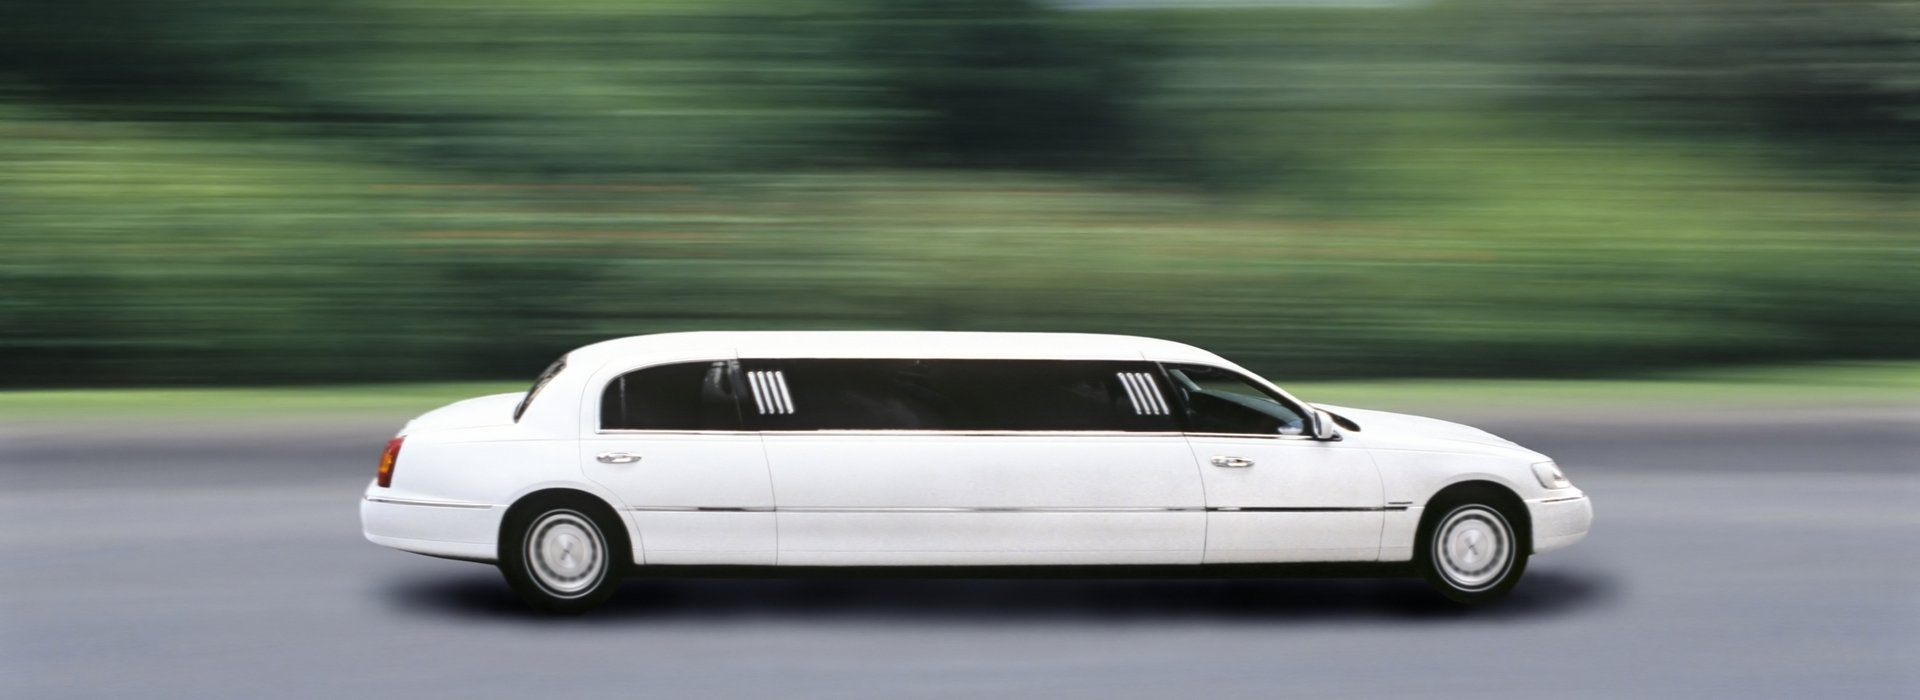 rent limo without driver